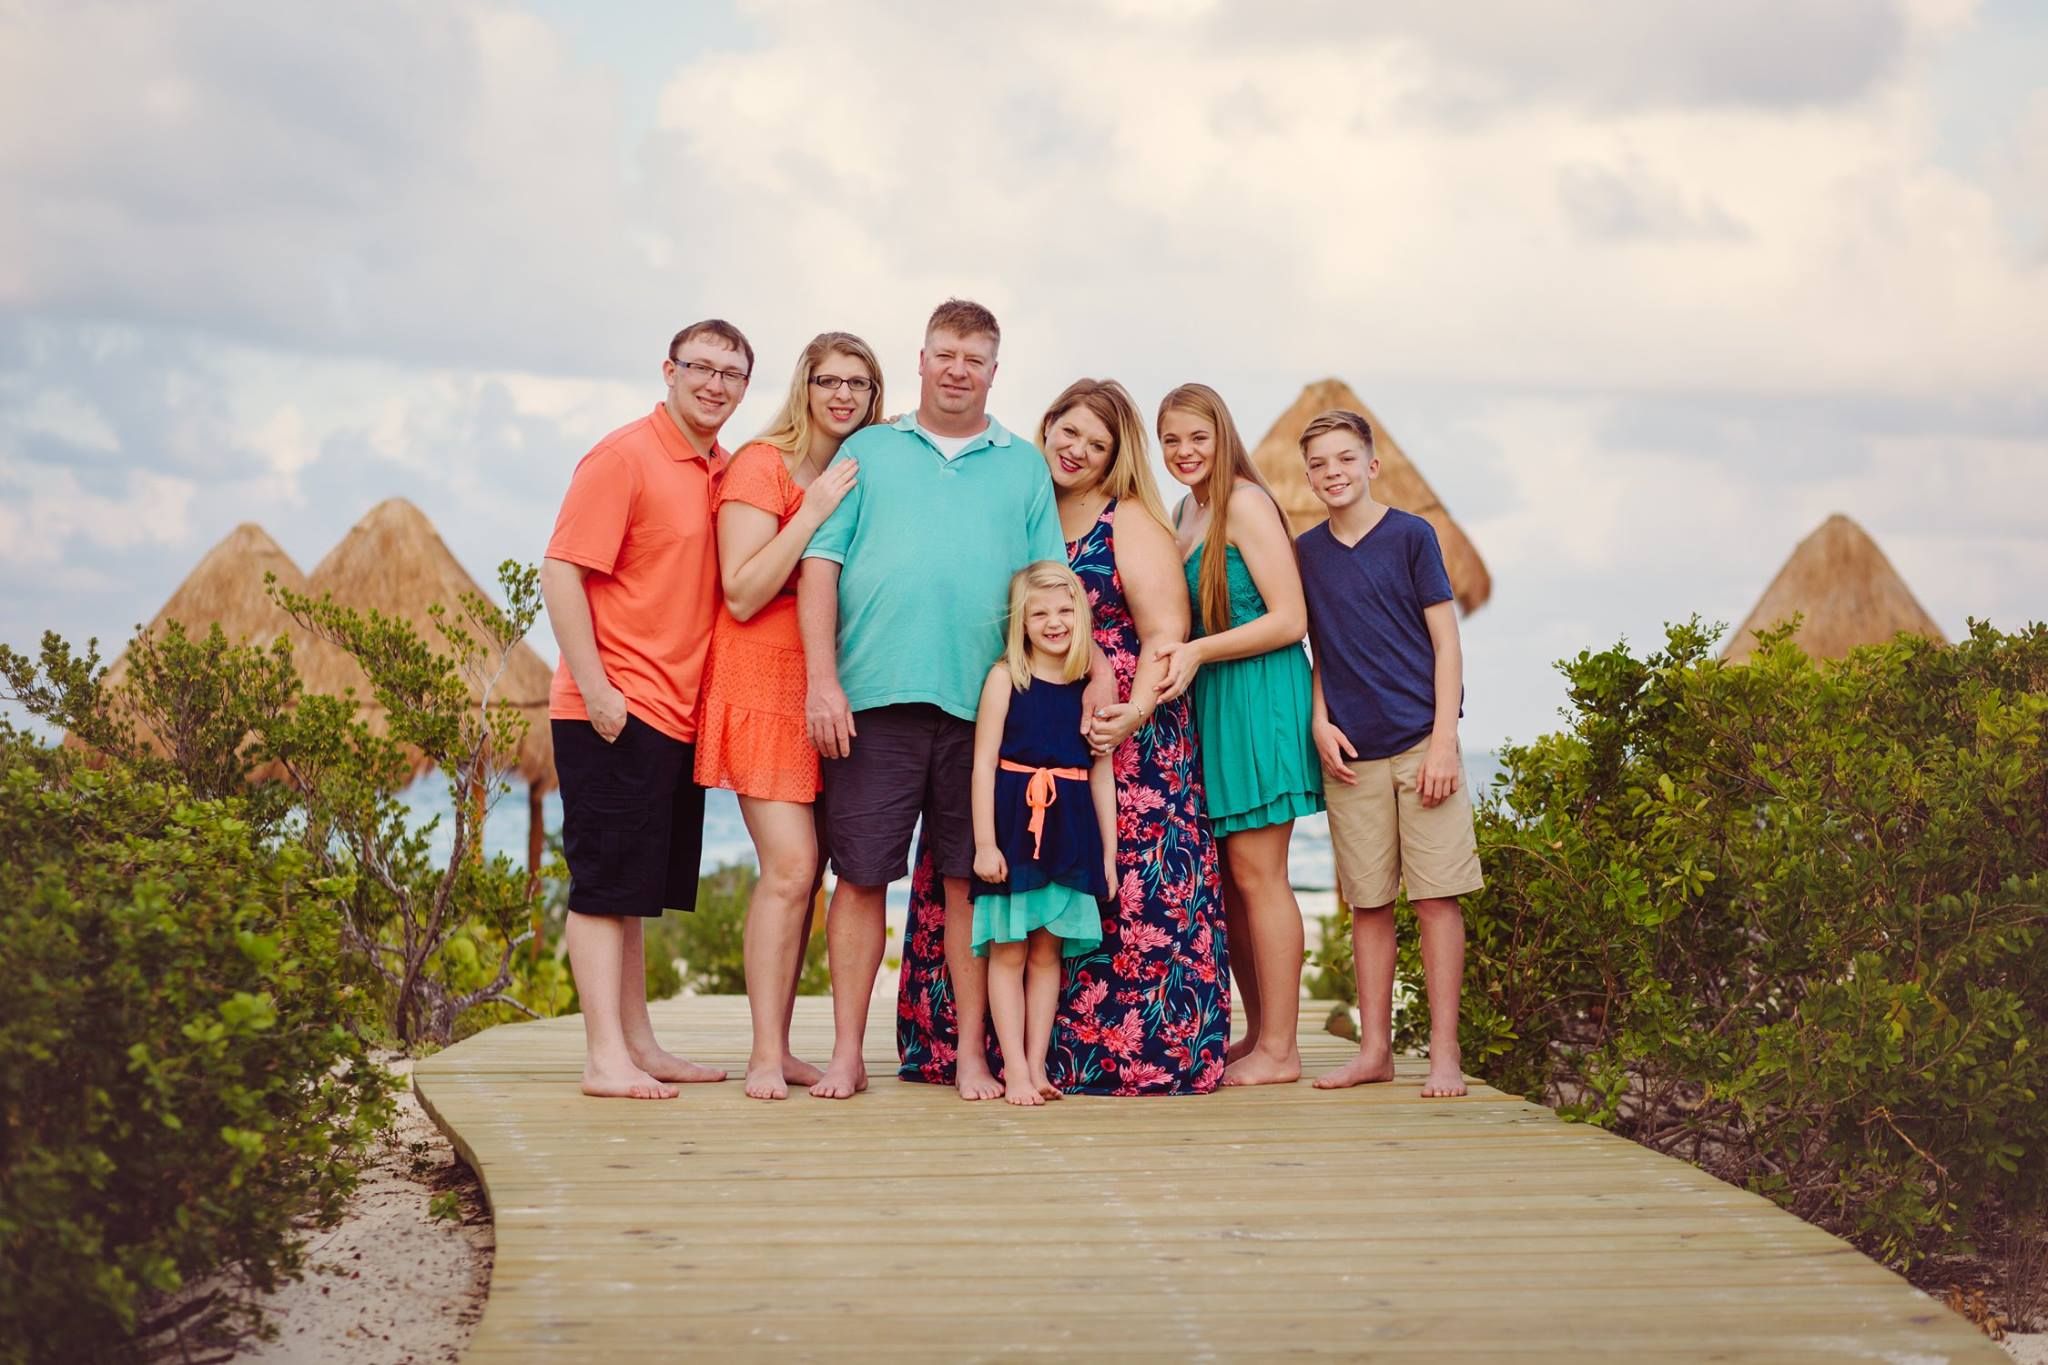 This is my family in Mexico a few years ago! Photographed by Monica Lopez in Cancun! https://monicalopezphoto.com/monica-lopez-photography/